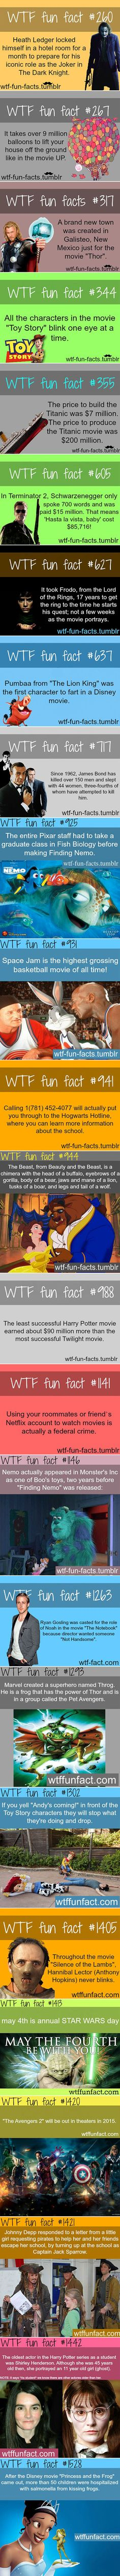 Here are some fun and random tv, movie, comic book facts that might surprise you (though the grammar in some make me squirm).